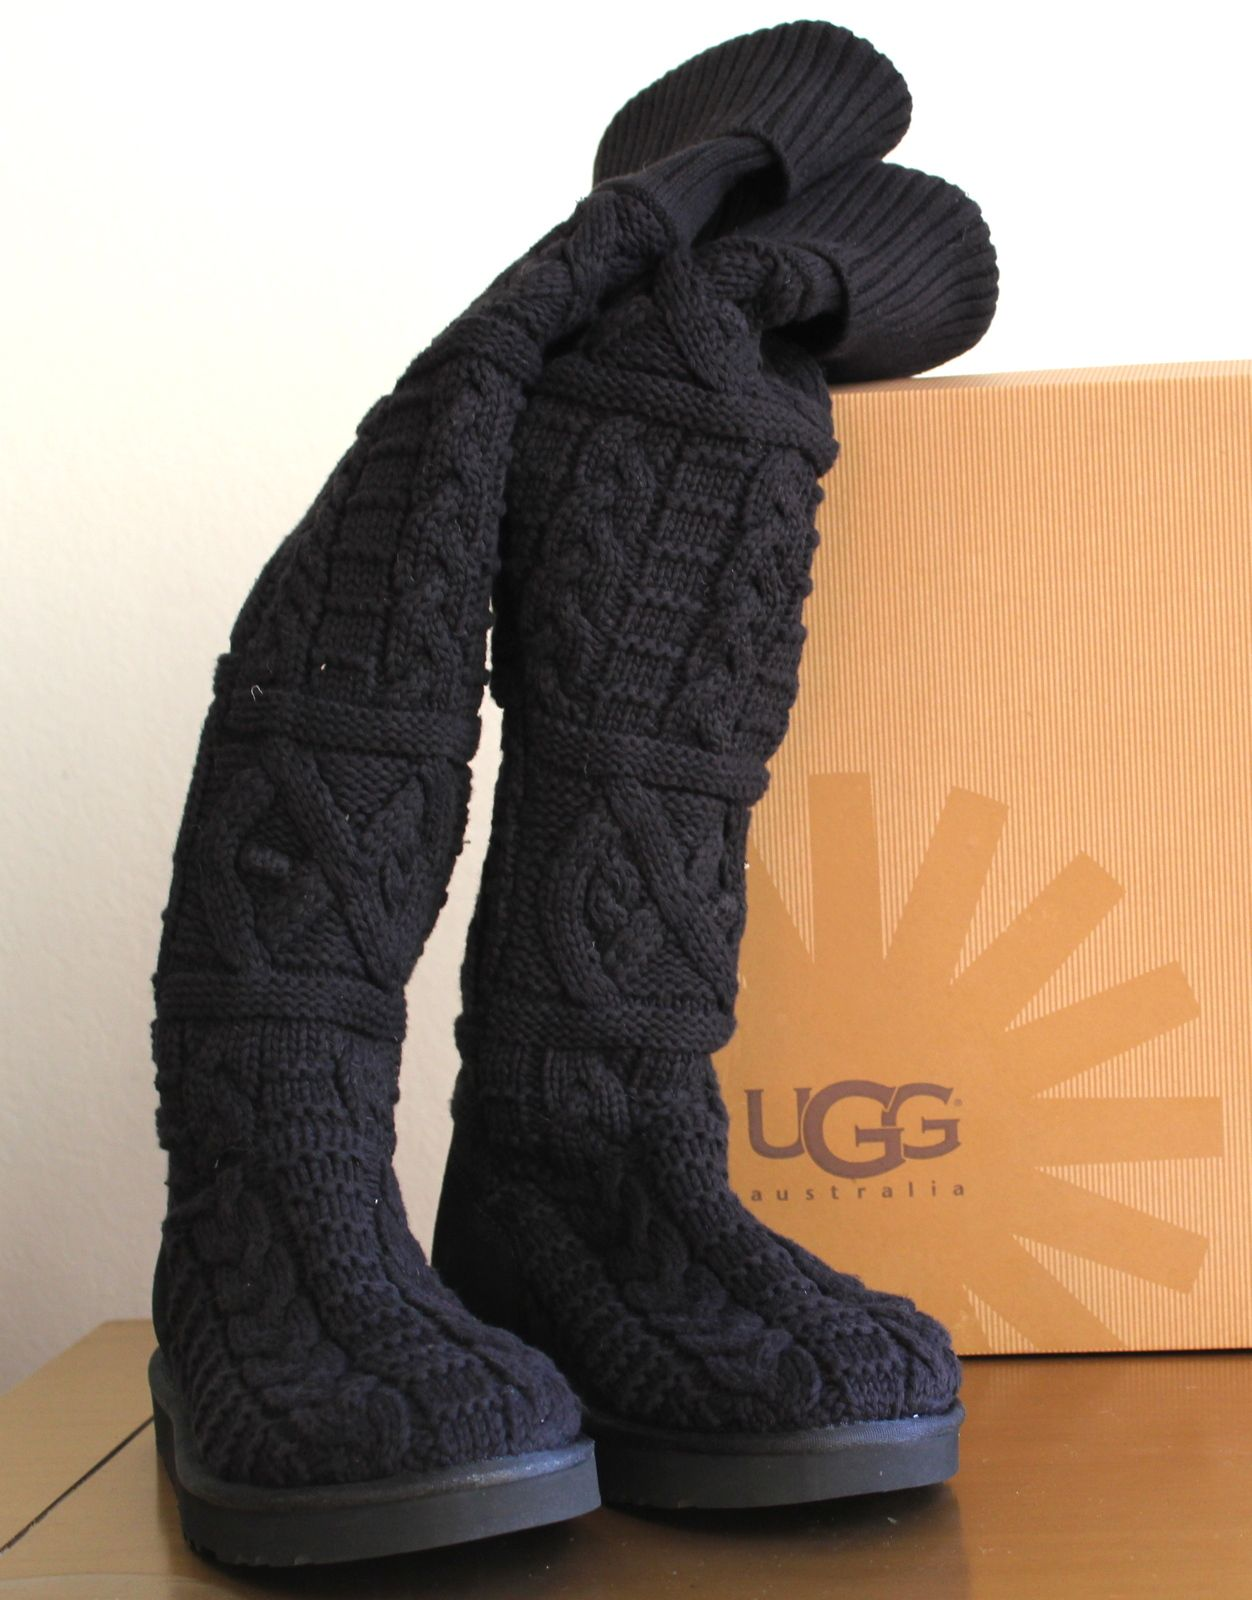 90e2c0af7e4 New Ugg Women s Over The Knee Twisted Cable Black Sz US 10 UK 8.5 EU 41 -  Boots